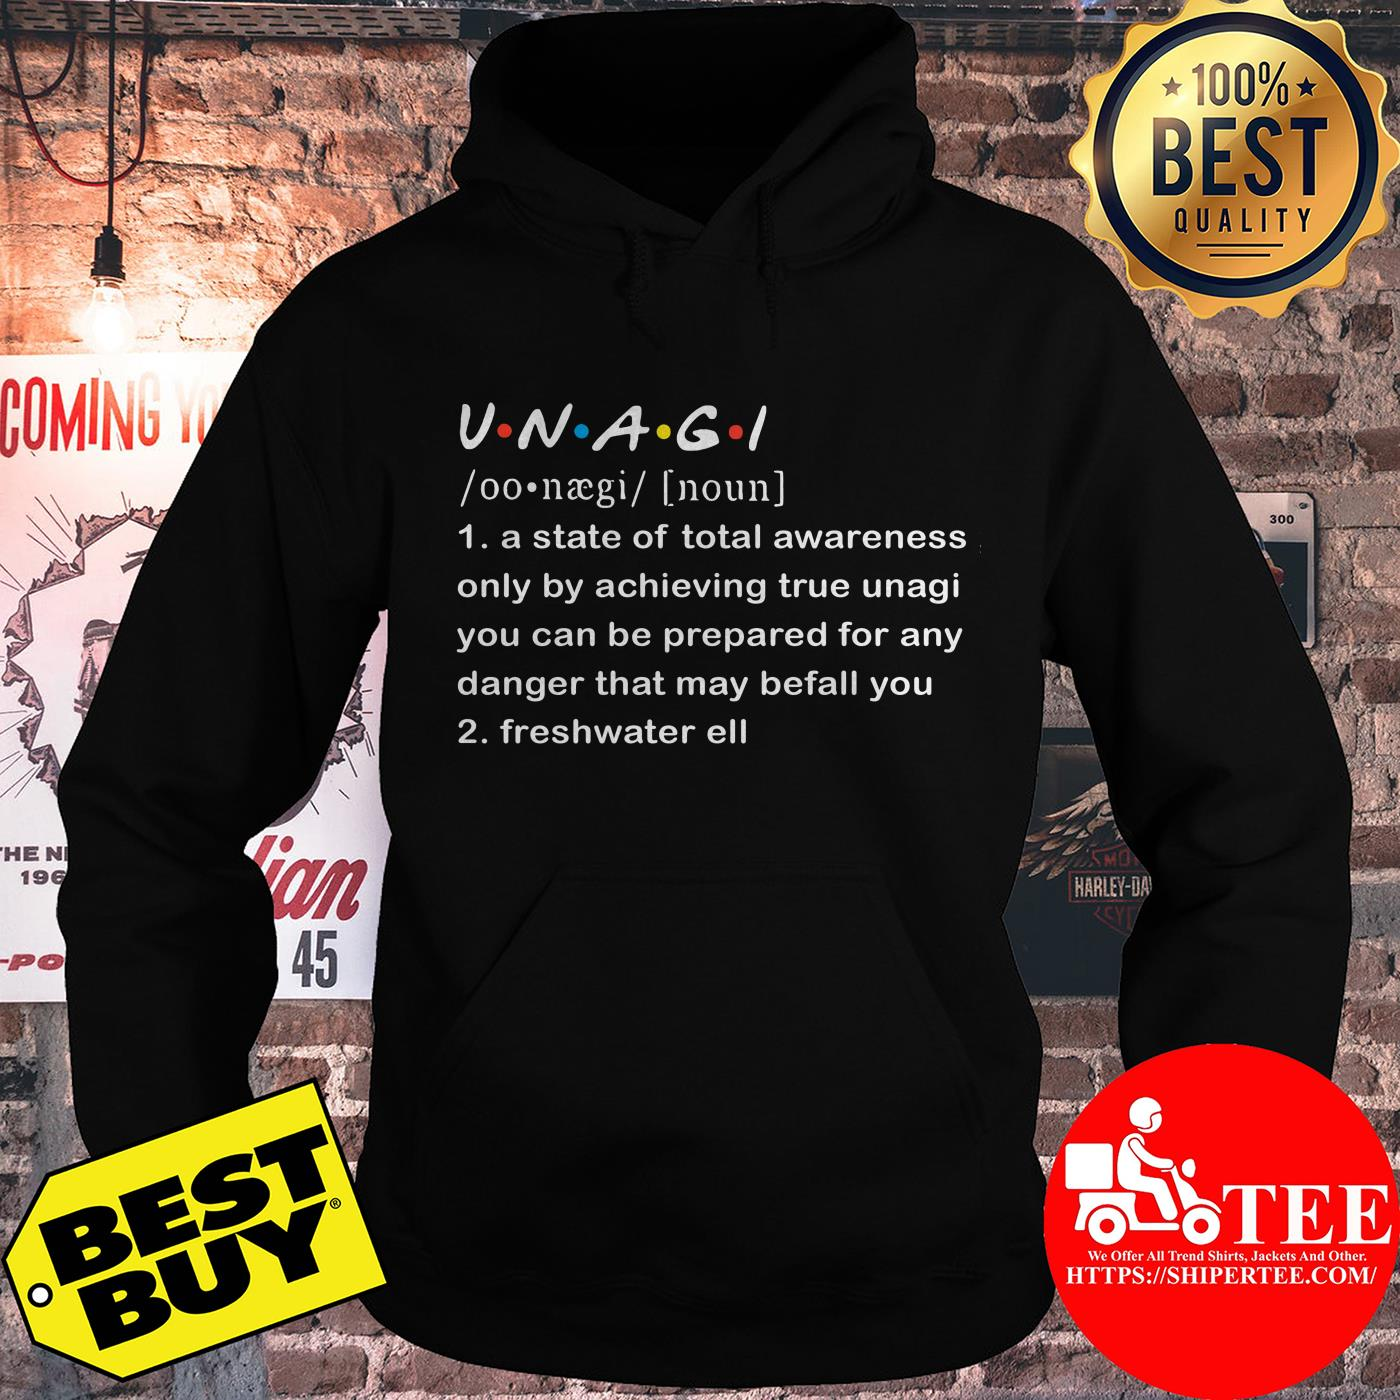 UNAGI meaning a state of total awareness only by achieving true unagi hoodie